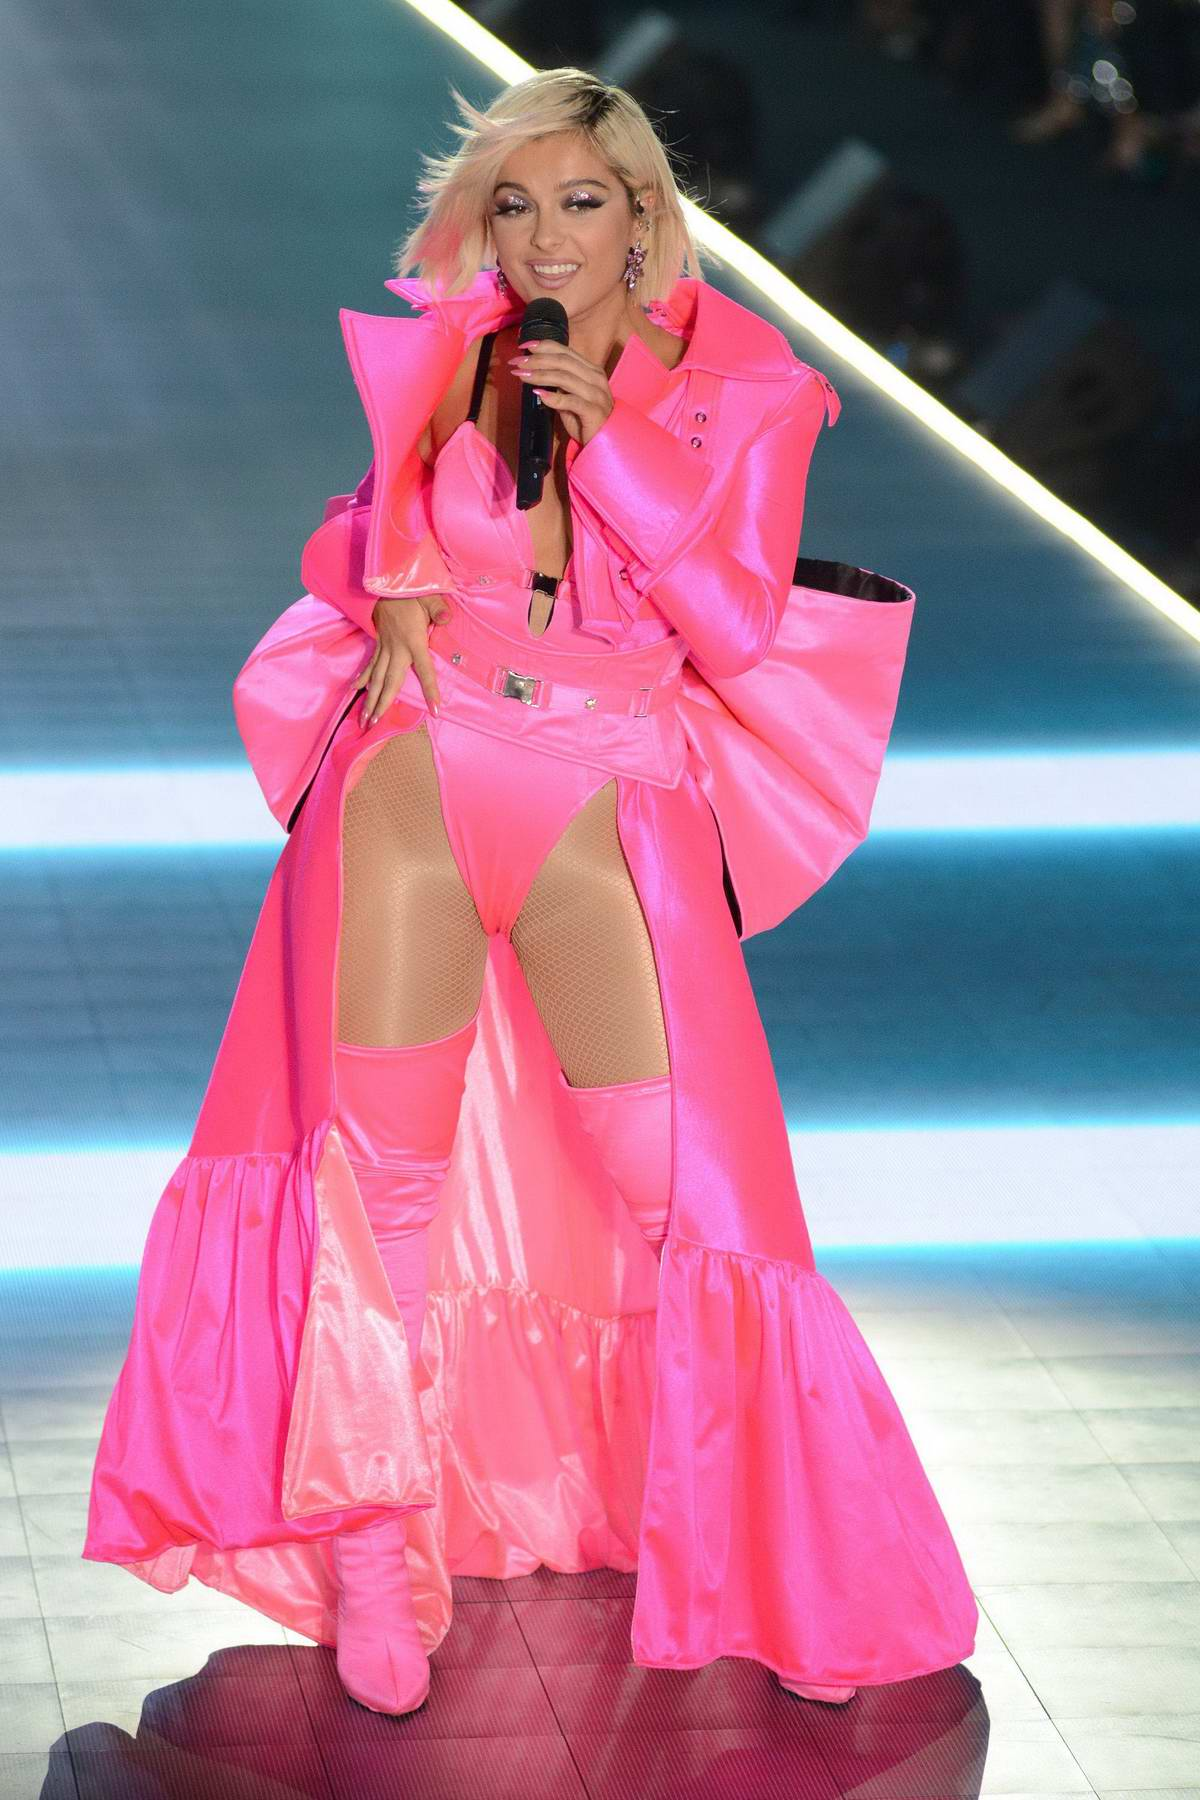 Bebe Rexha performs during the 2018 Victoria's Secret Fashion Show at Pier 94 in New York City